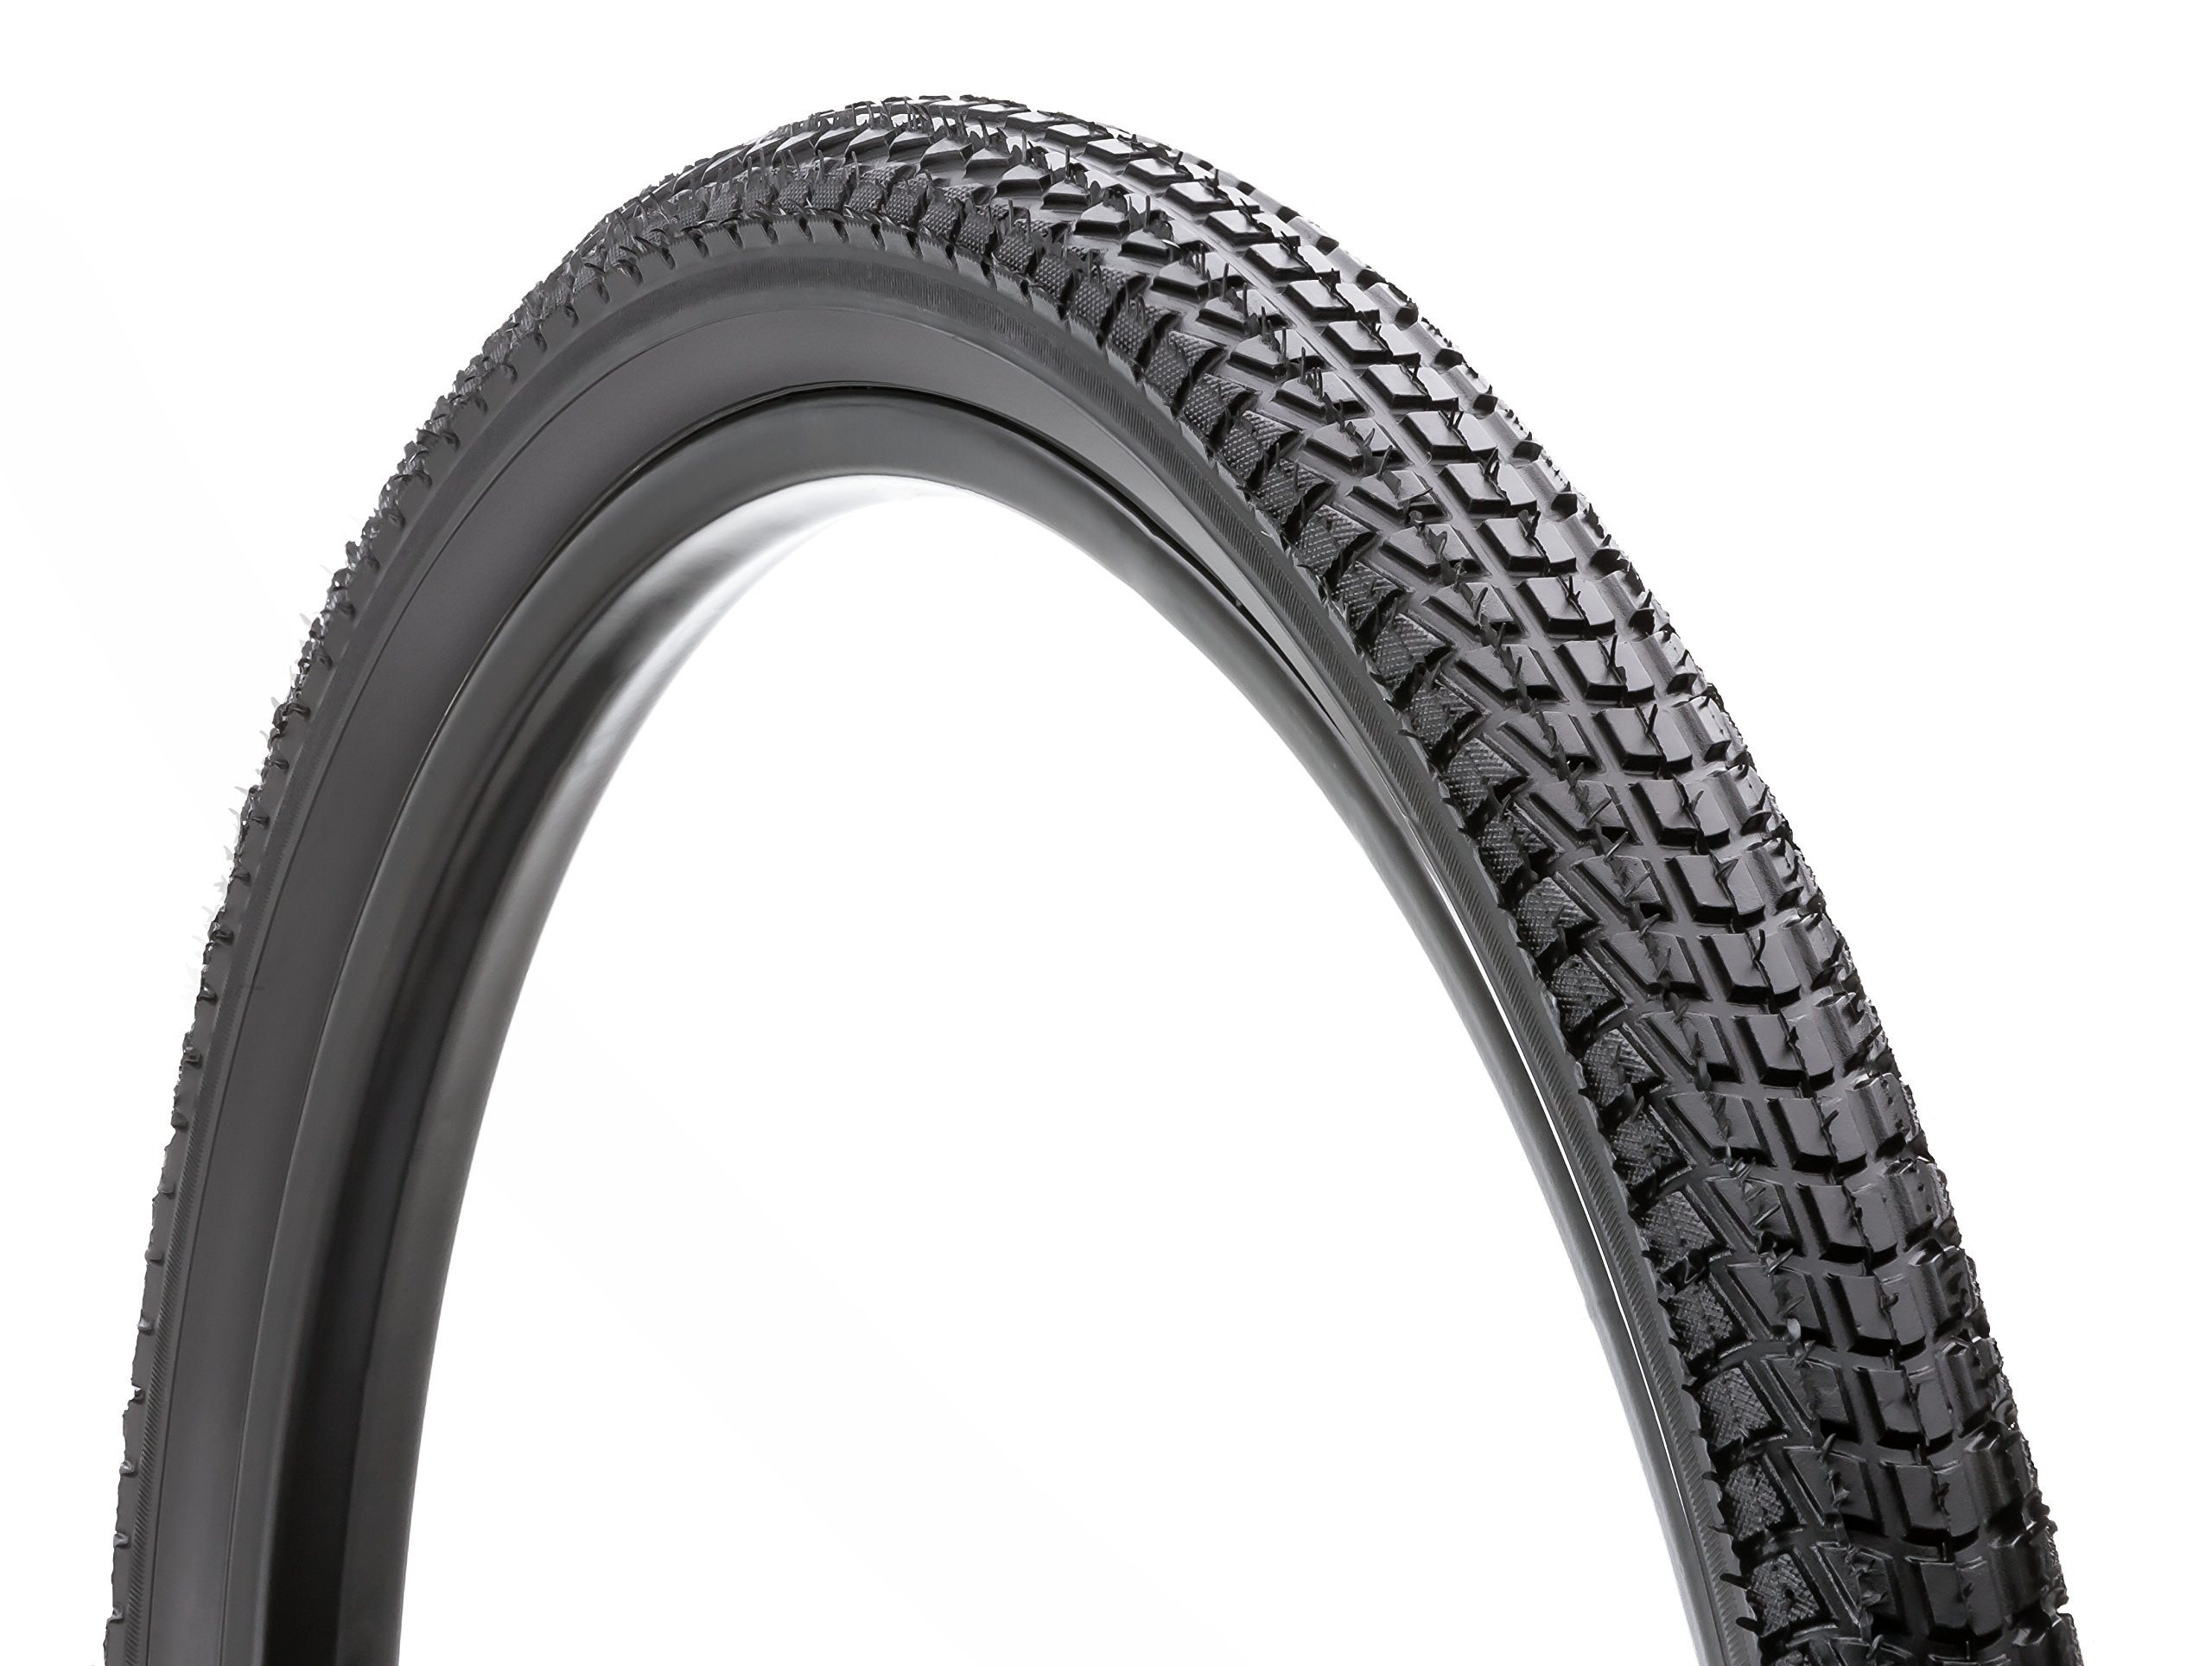 Schwinn Bike Replacement Tire with Kevlar (26 inch x 1.95 inch) black, hybrid/comfort by Schwinn (Image #1)